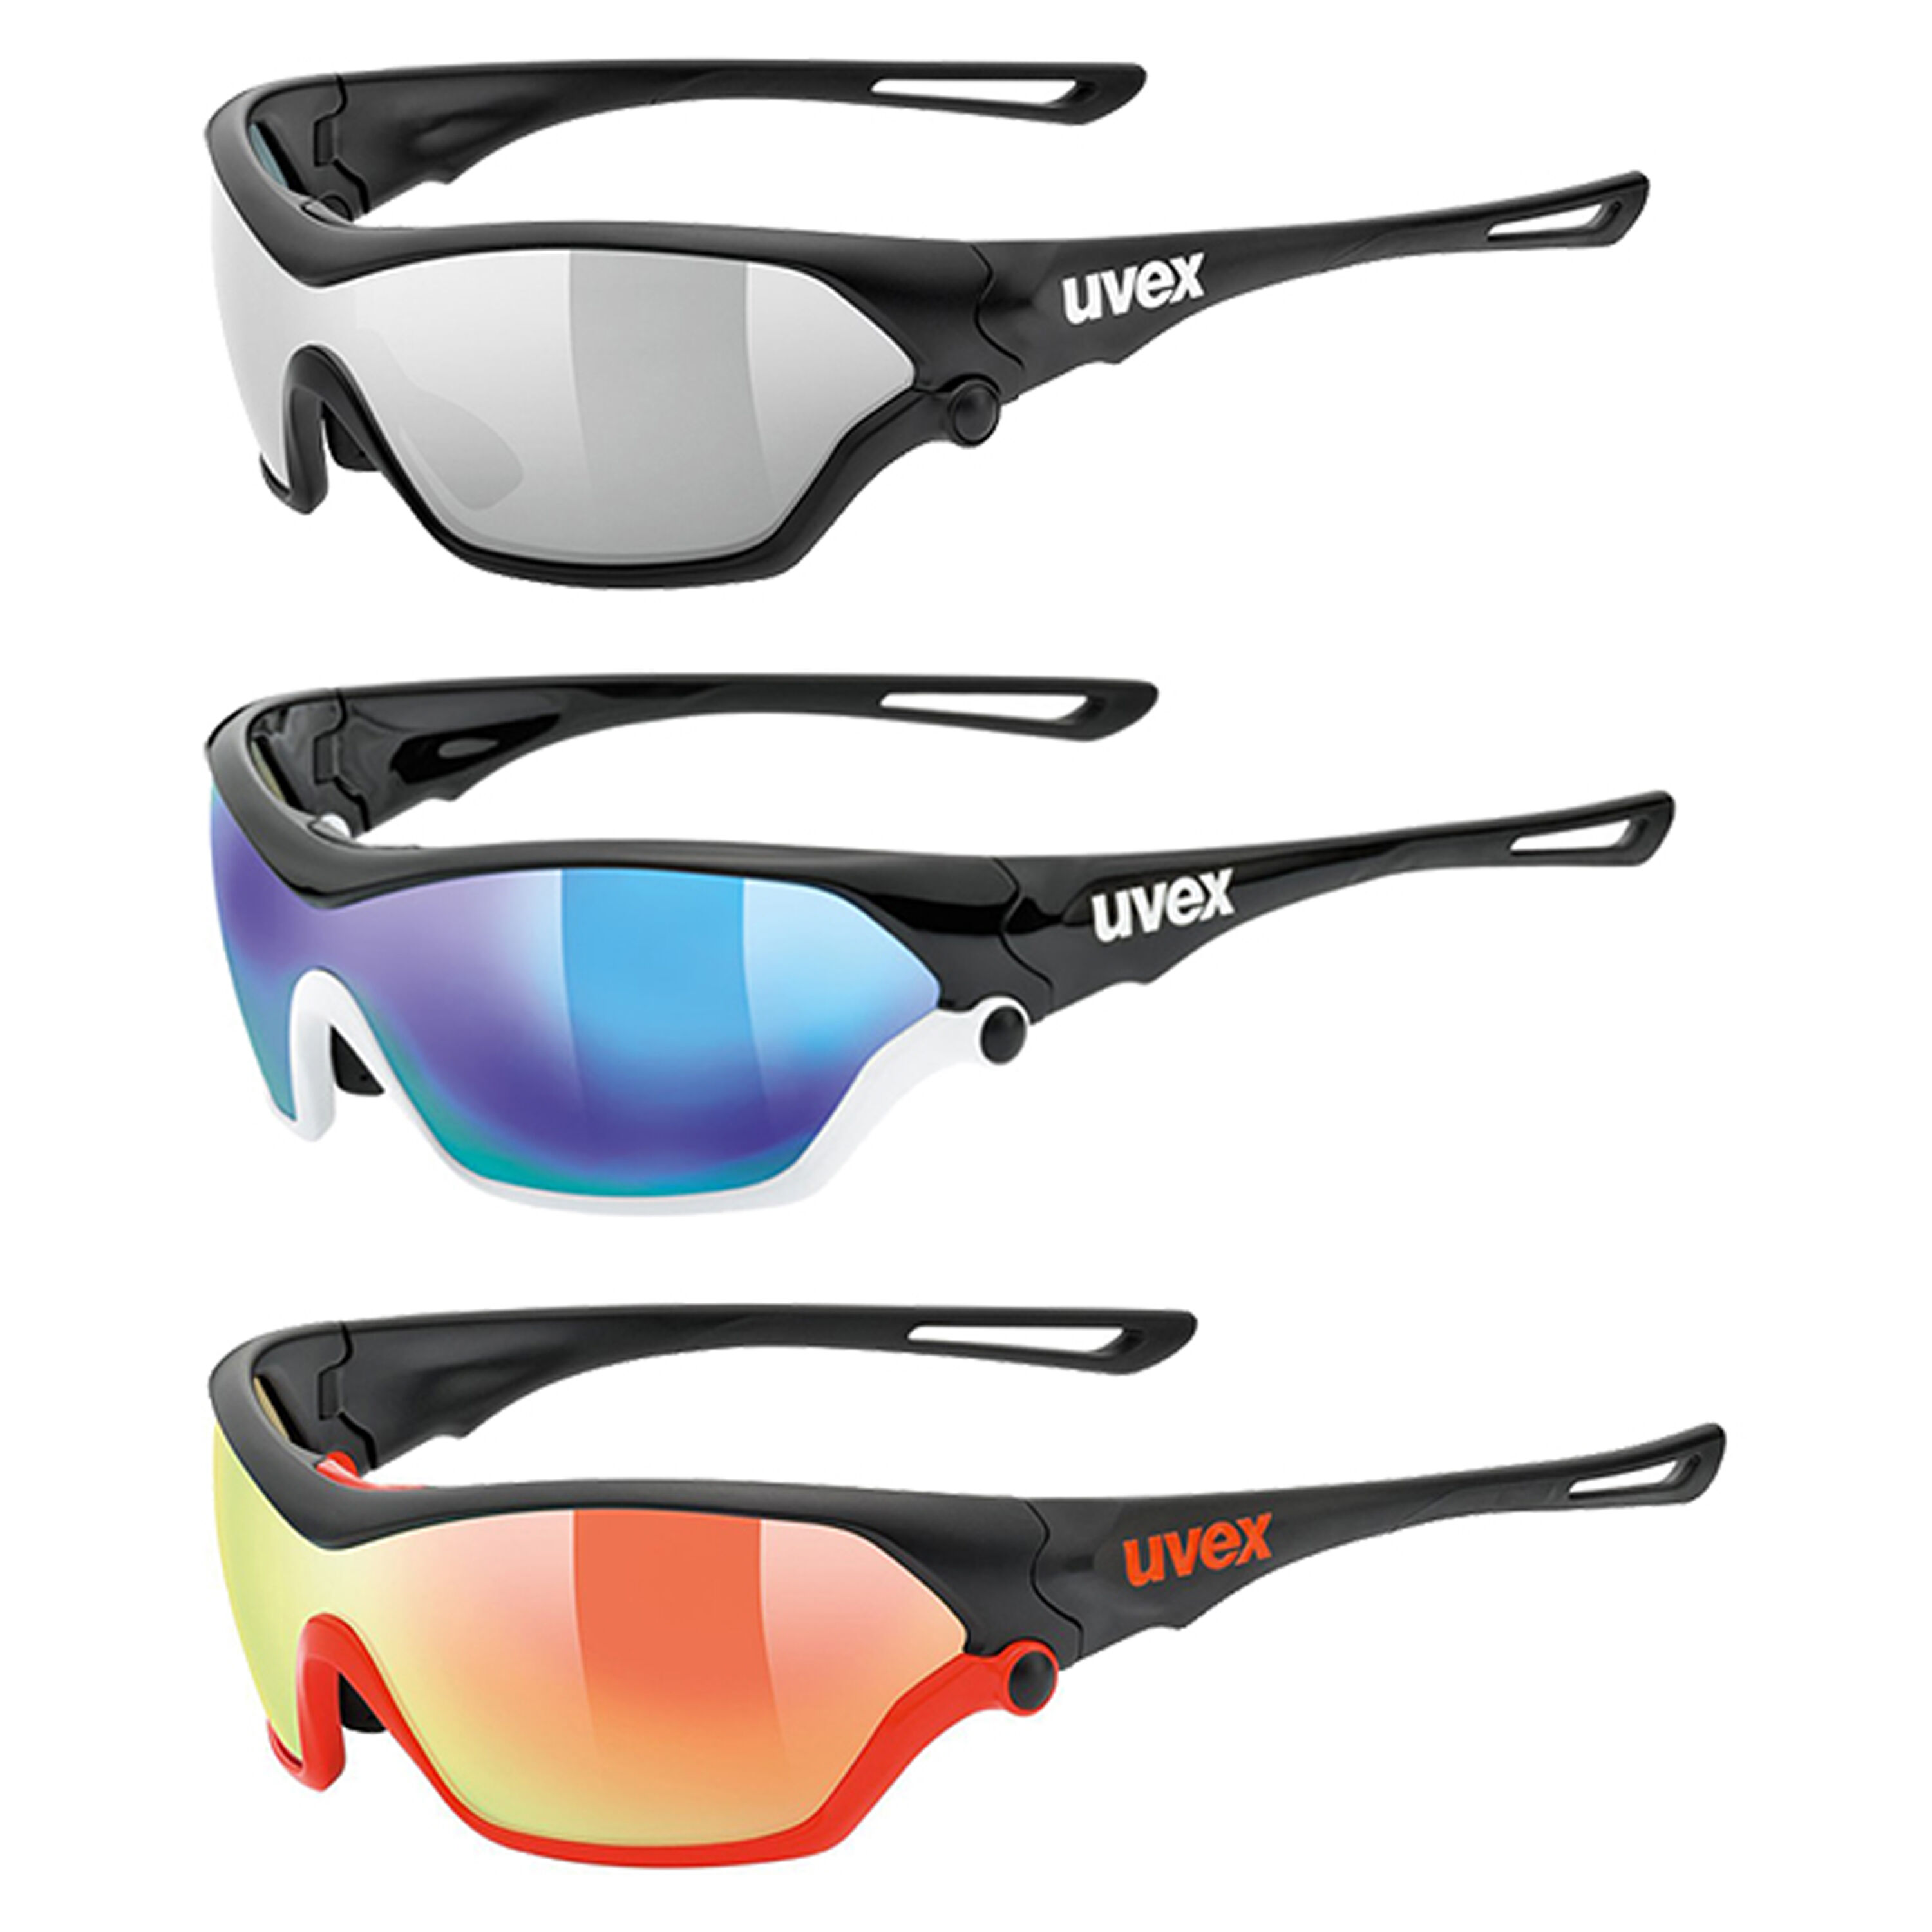 0af476706cf Uvex Sportstyle 705 eyewear. Brand  Uvex. Be the first to review this  product